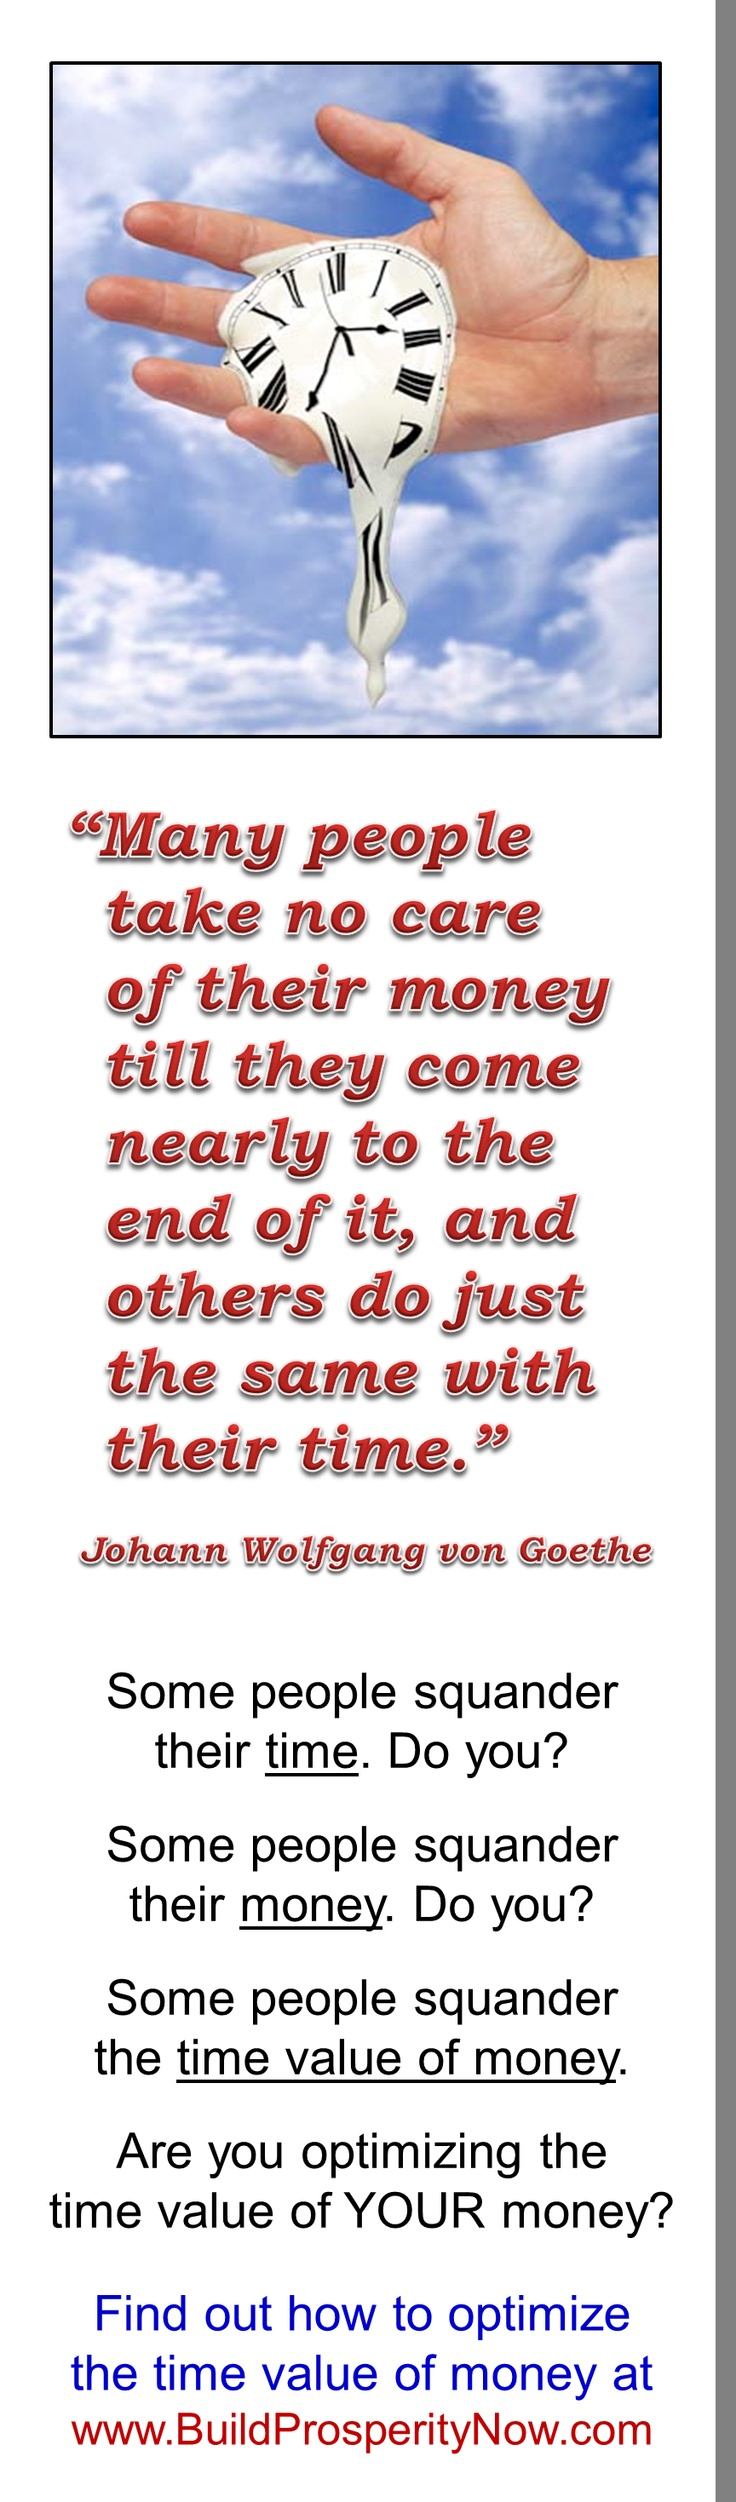 This insight by Johann Wolfgang von Goethe reminds